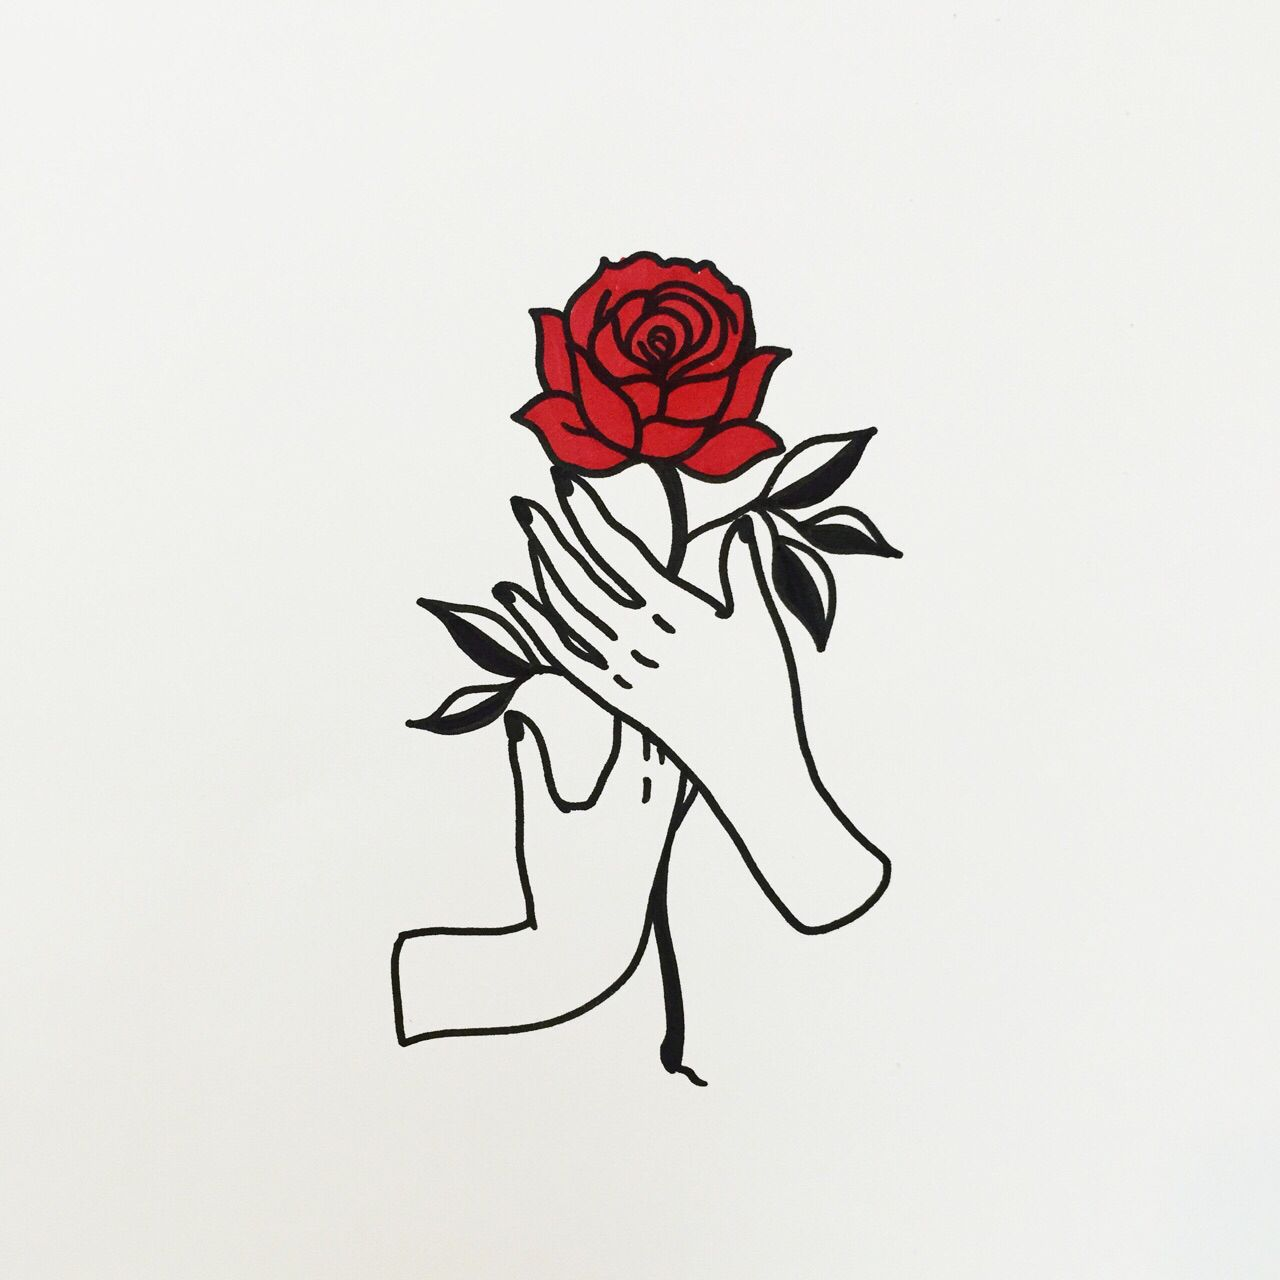 Holding Red Rose T A T T O O S